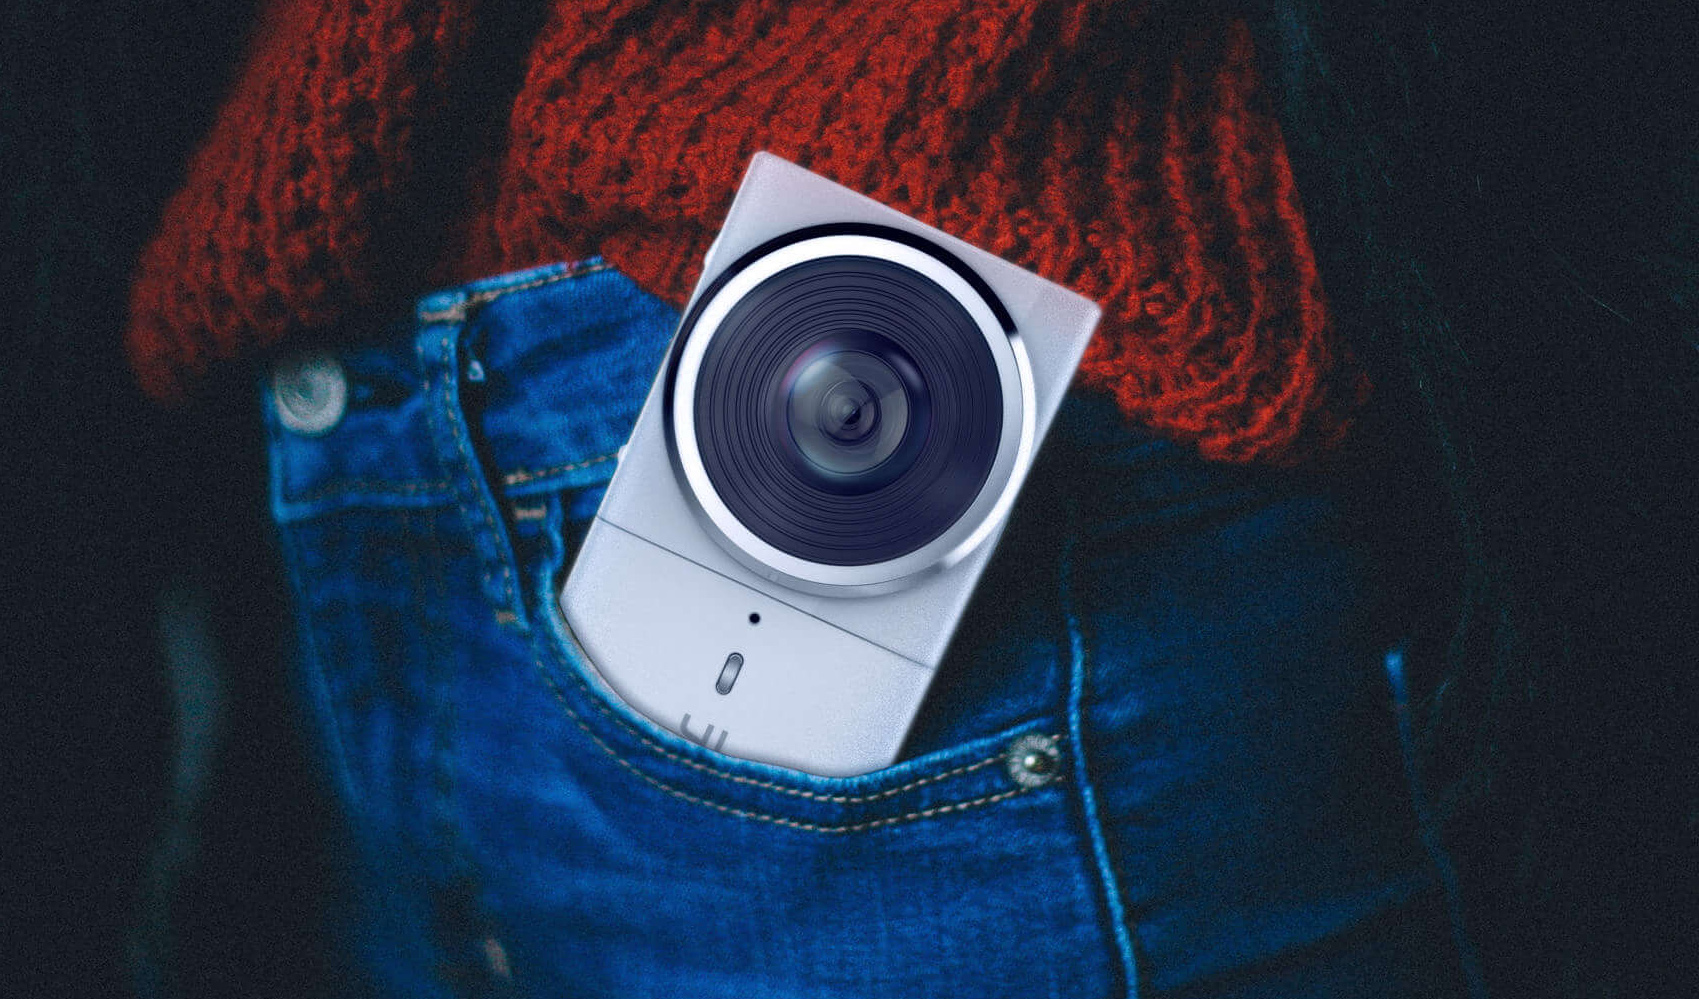 YI HALO Google Jump-Powered VR Camera Announced At NAB 2017